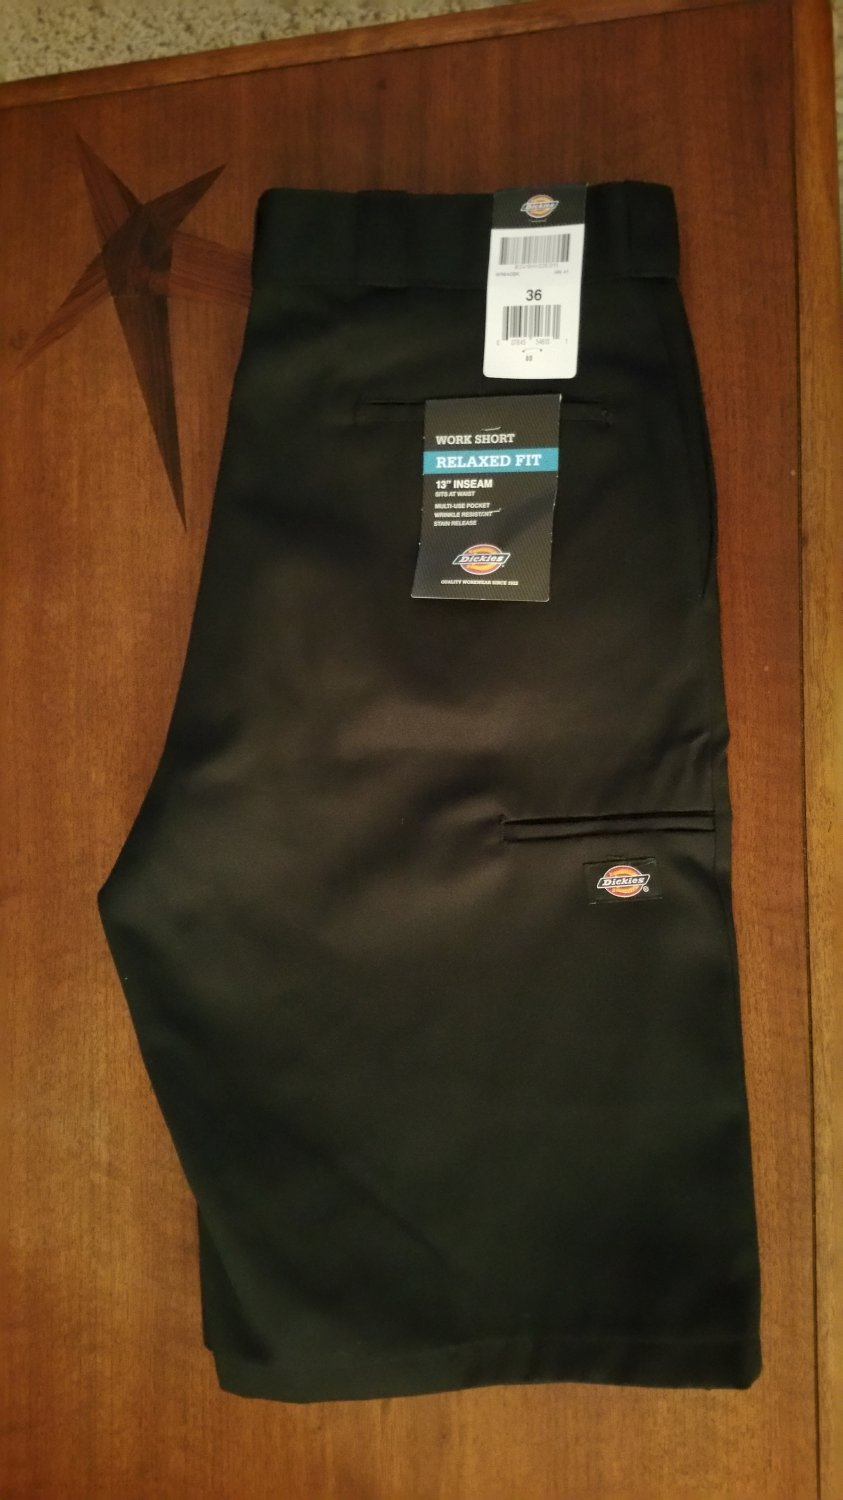 Dickies Work Shorts - Relaxed Fit Size 36